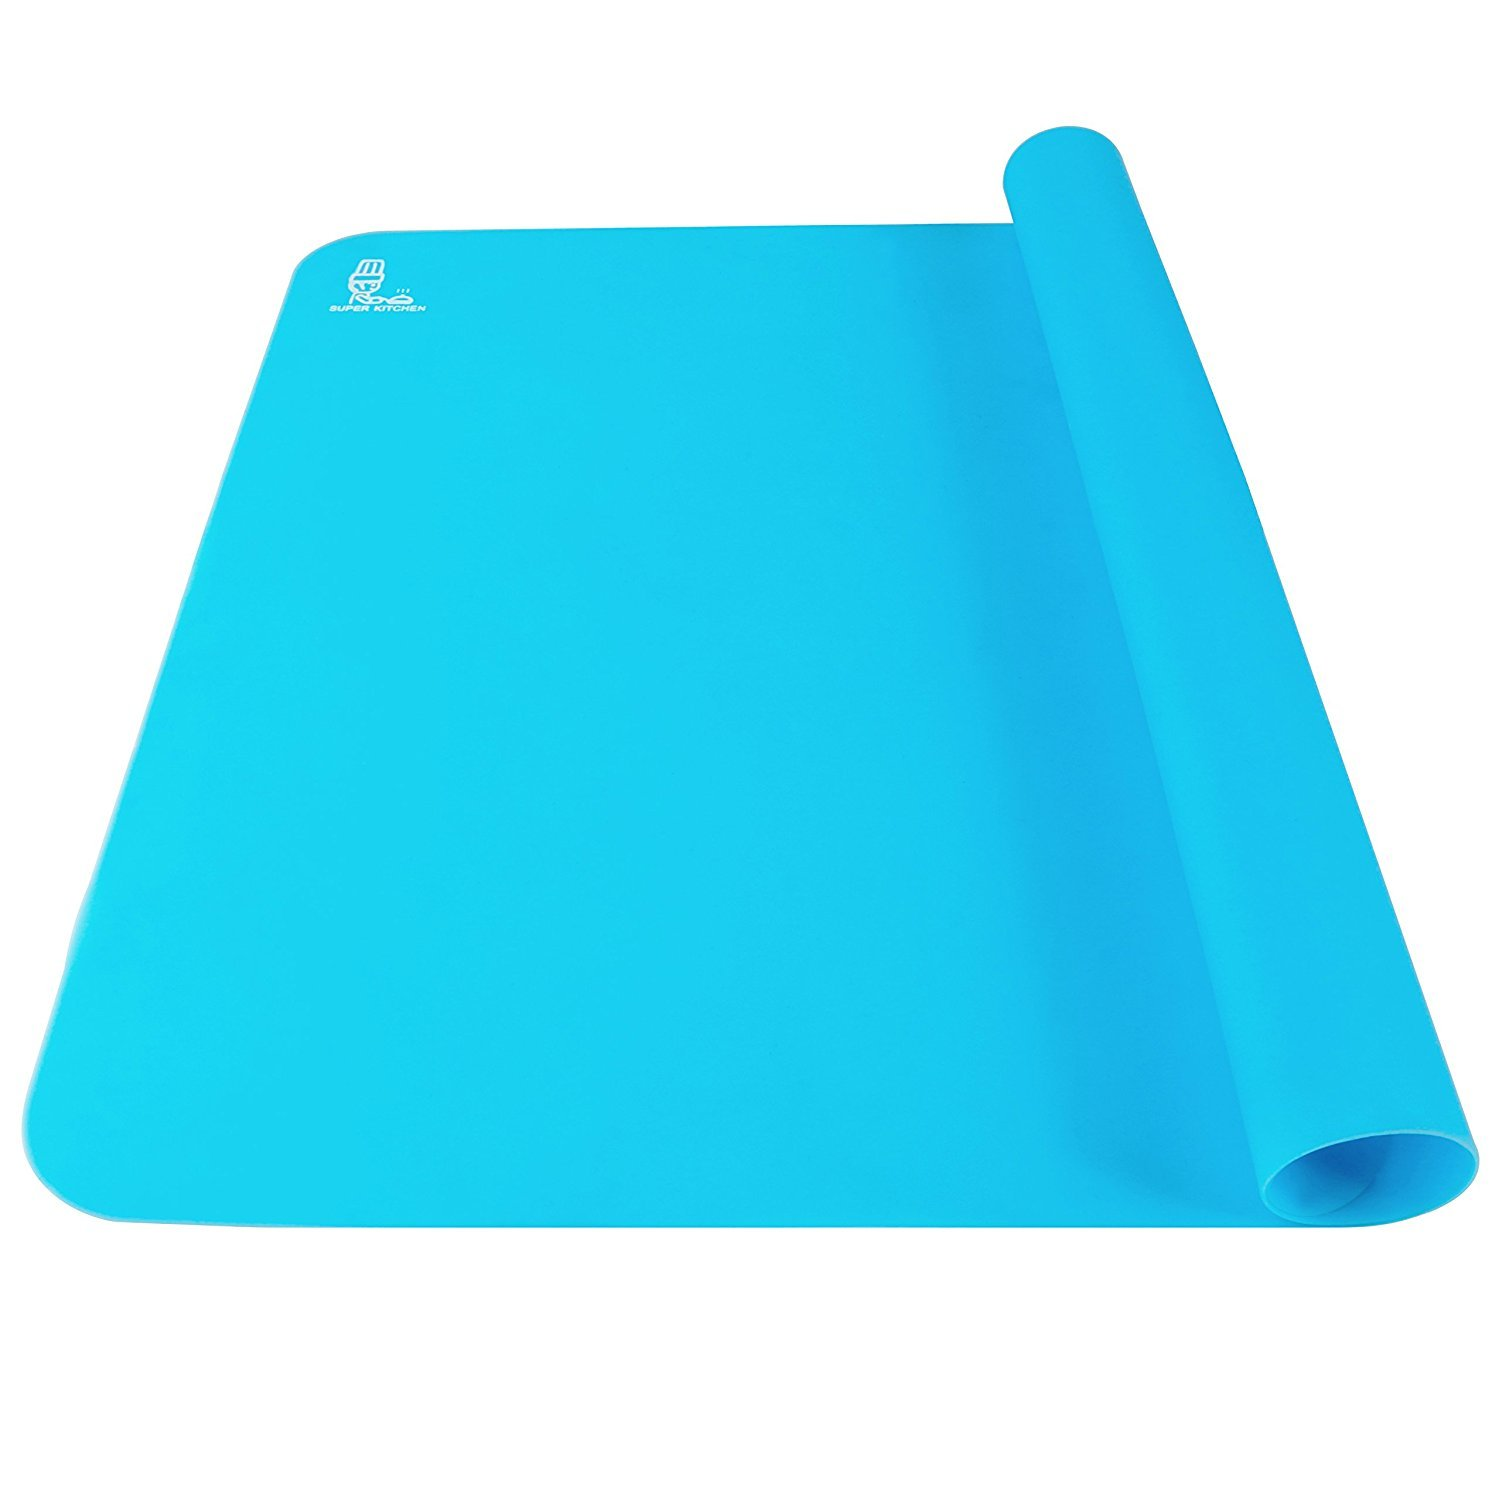 Super Kitchen Food Grade Non-stick Silicone Pastry Mat - For Heat Resistant Nonskid Table Mat,Baking Mat, Countertop Protector, Pie and Fondant Mat 23.6''15.75'' (Blue)